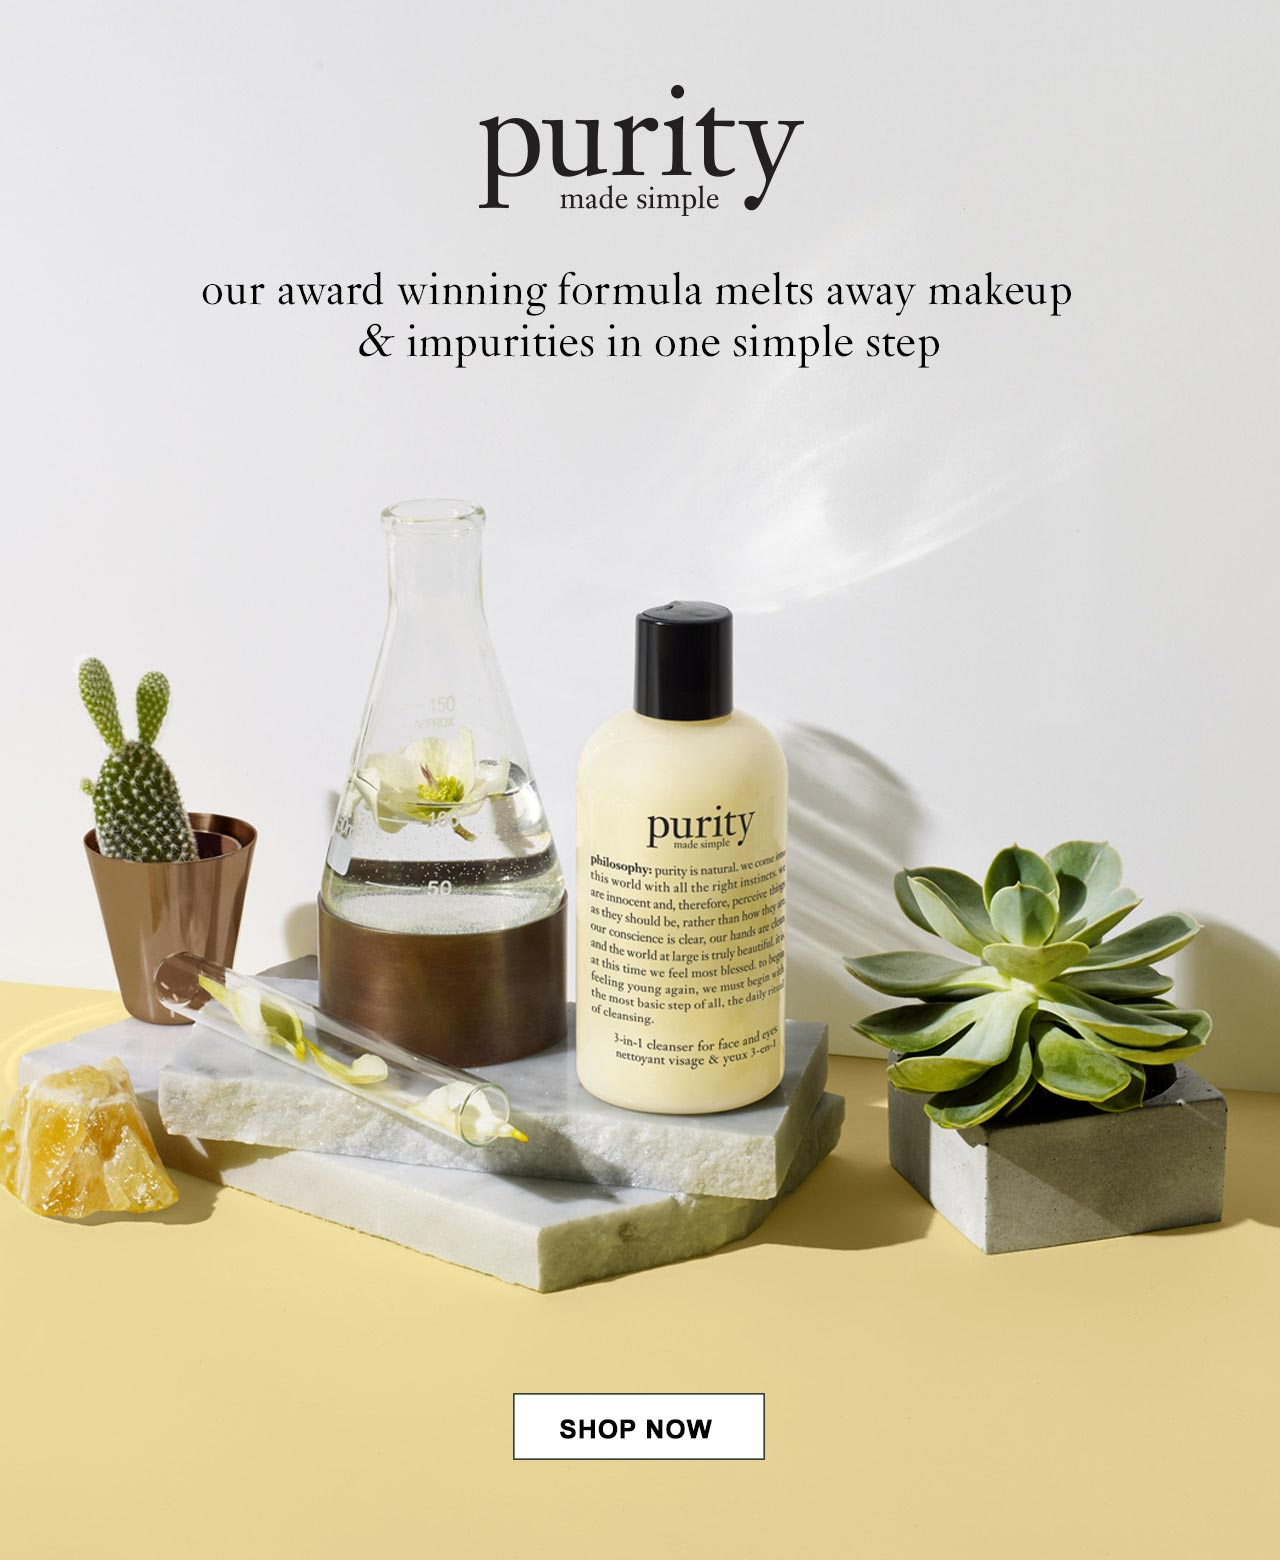 Purity our award winning formula melts away makeup and impurities in one simple step. Shop now